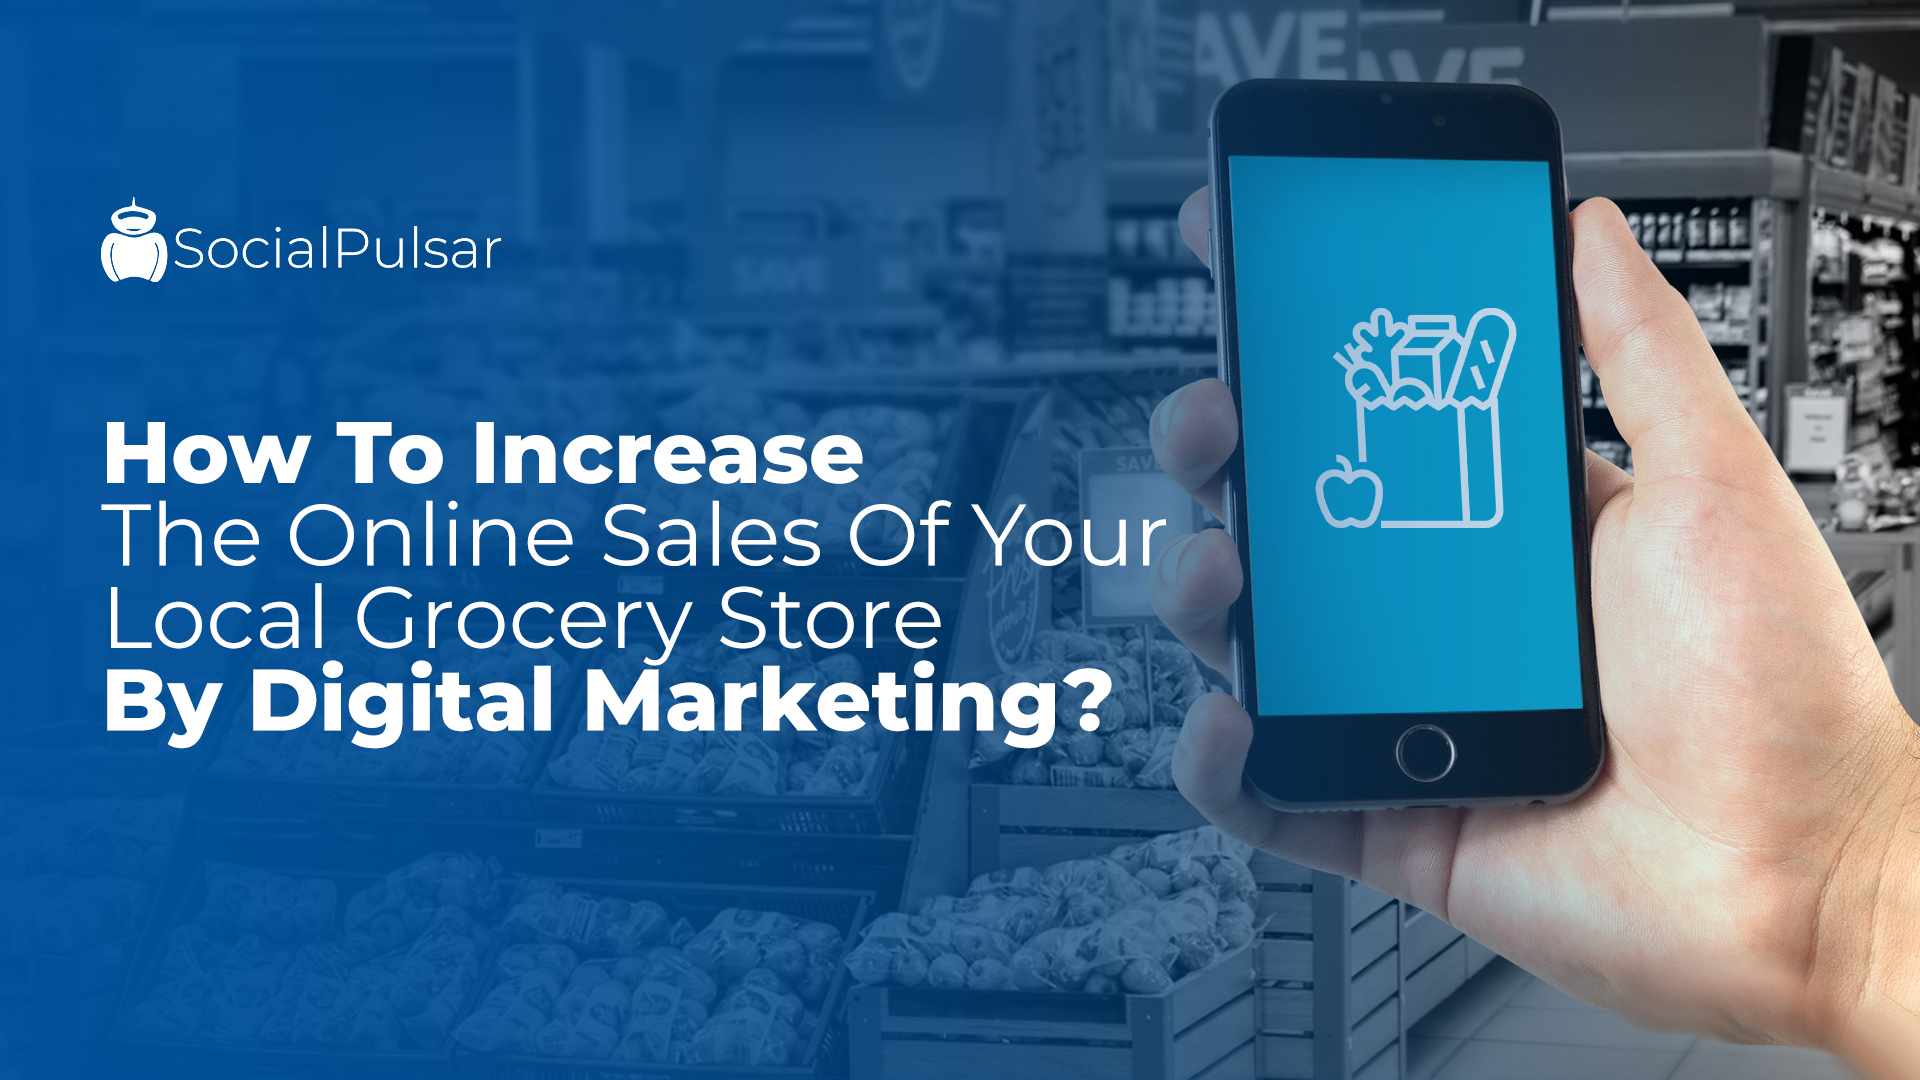 How To Increase The Online Sales Of Your Local Grocery Store By Digital Marketing?